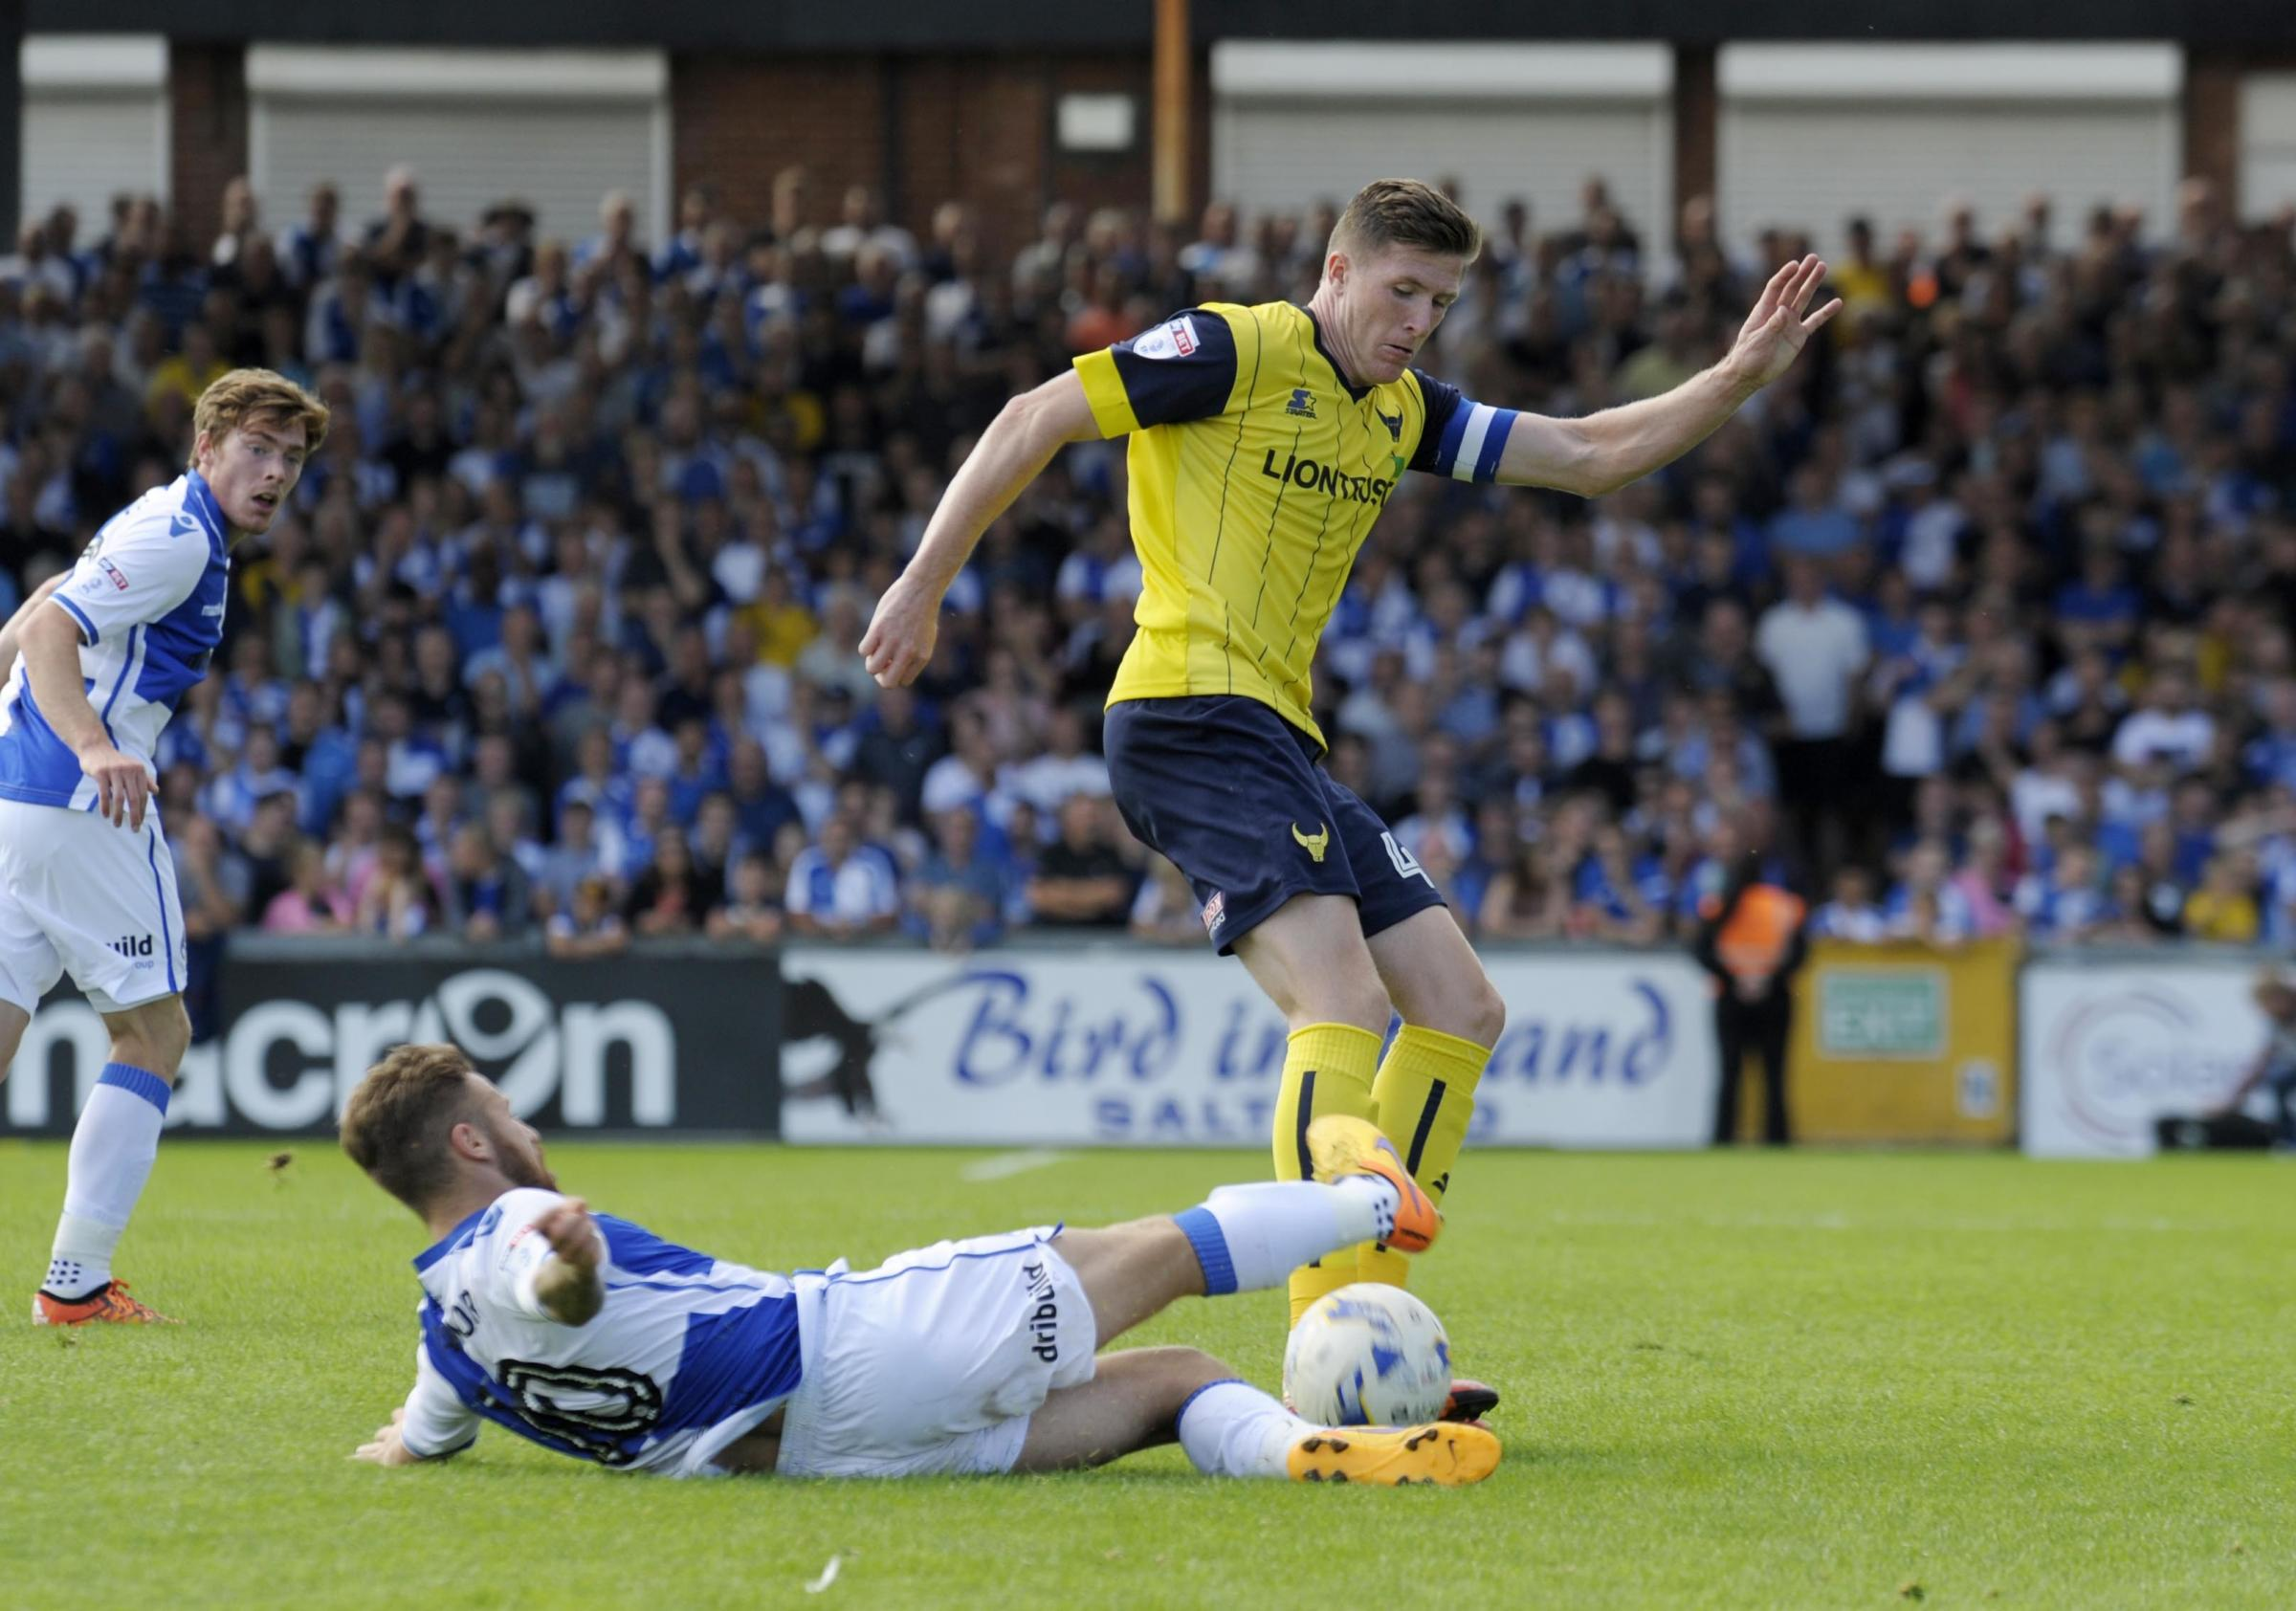 Oxford United's John Lundstram says he is not burdened by wearing the captain's armband Picture: David Fleming